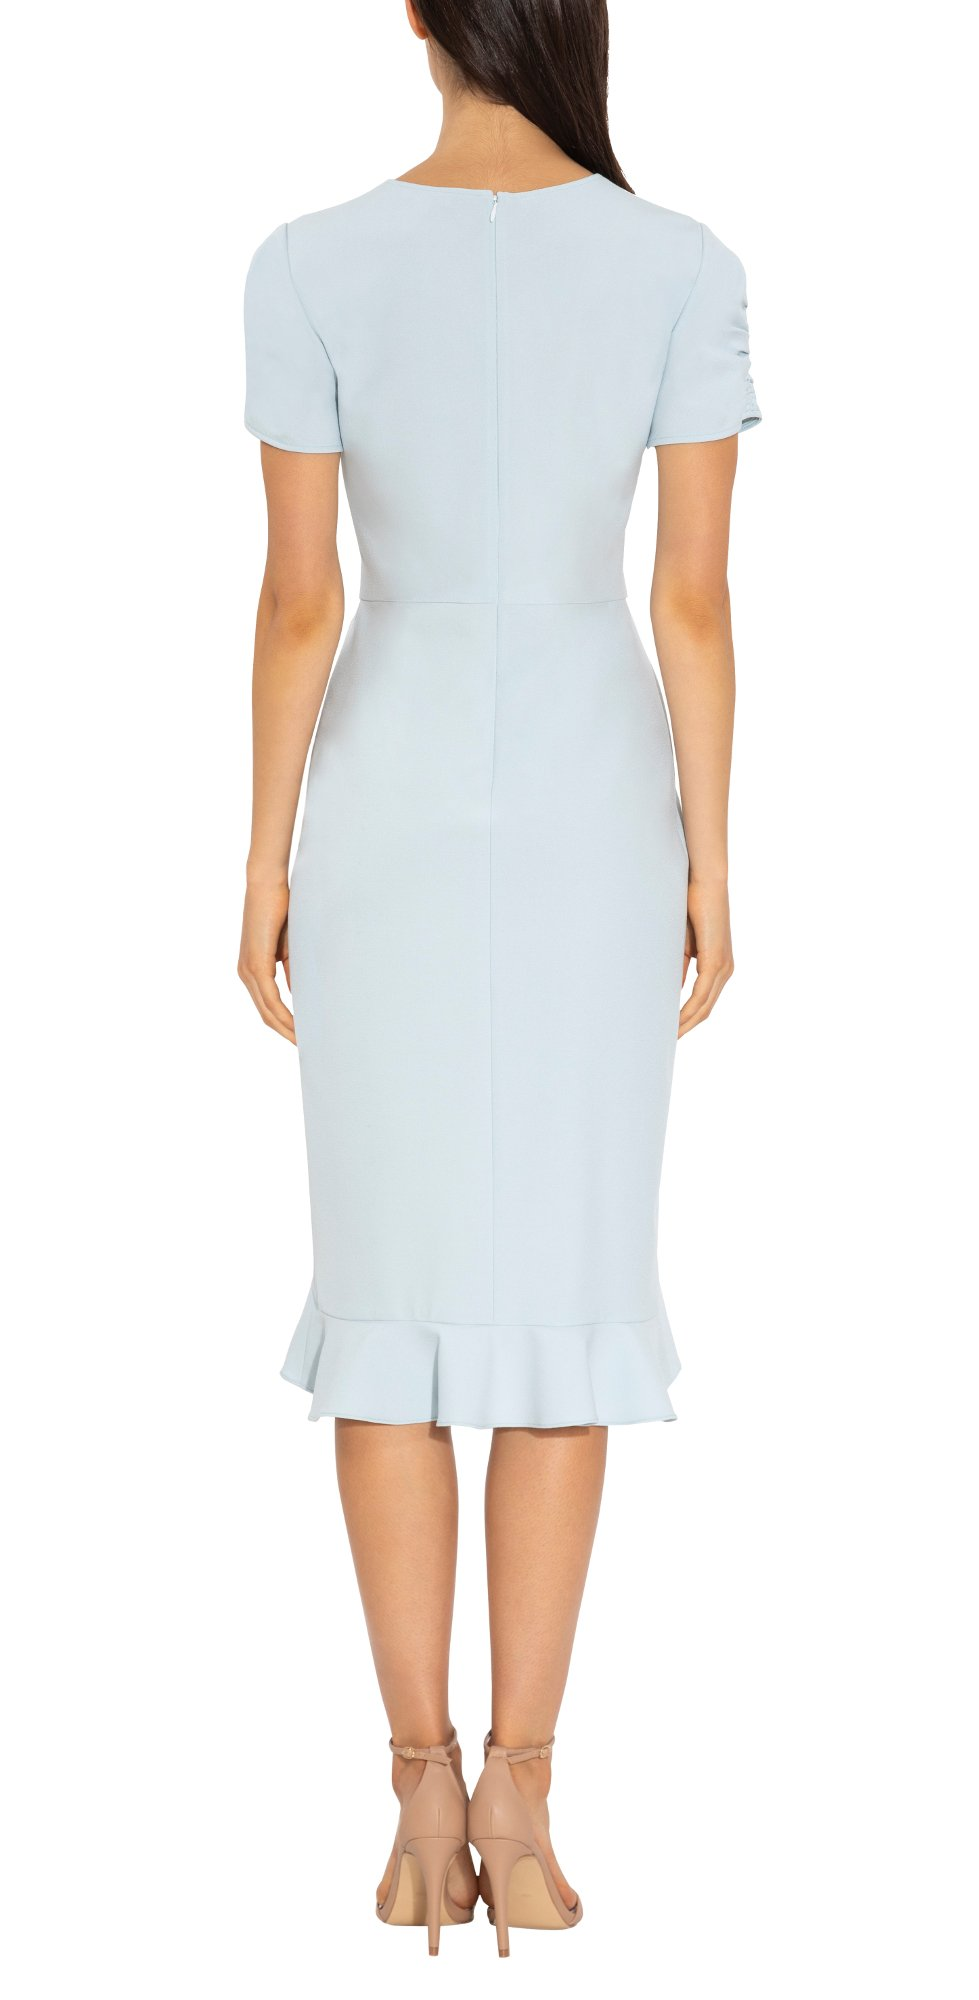 Alianora Dress - Powder Blue